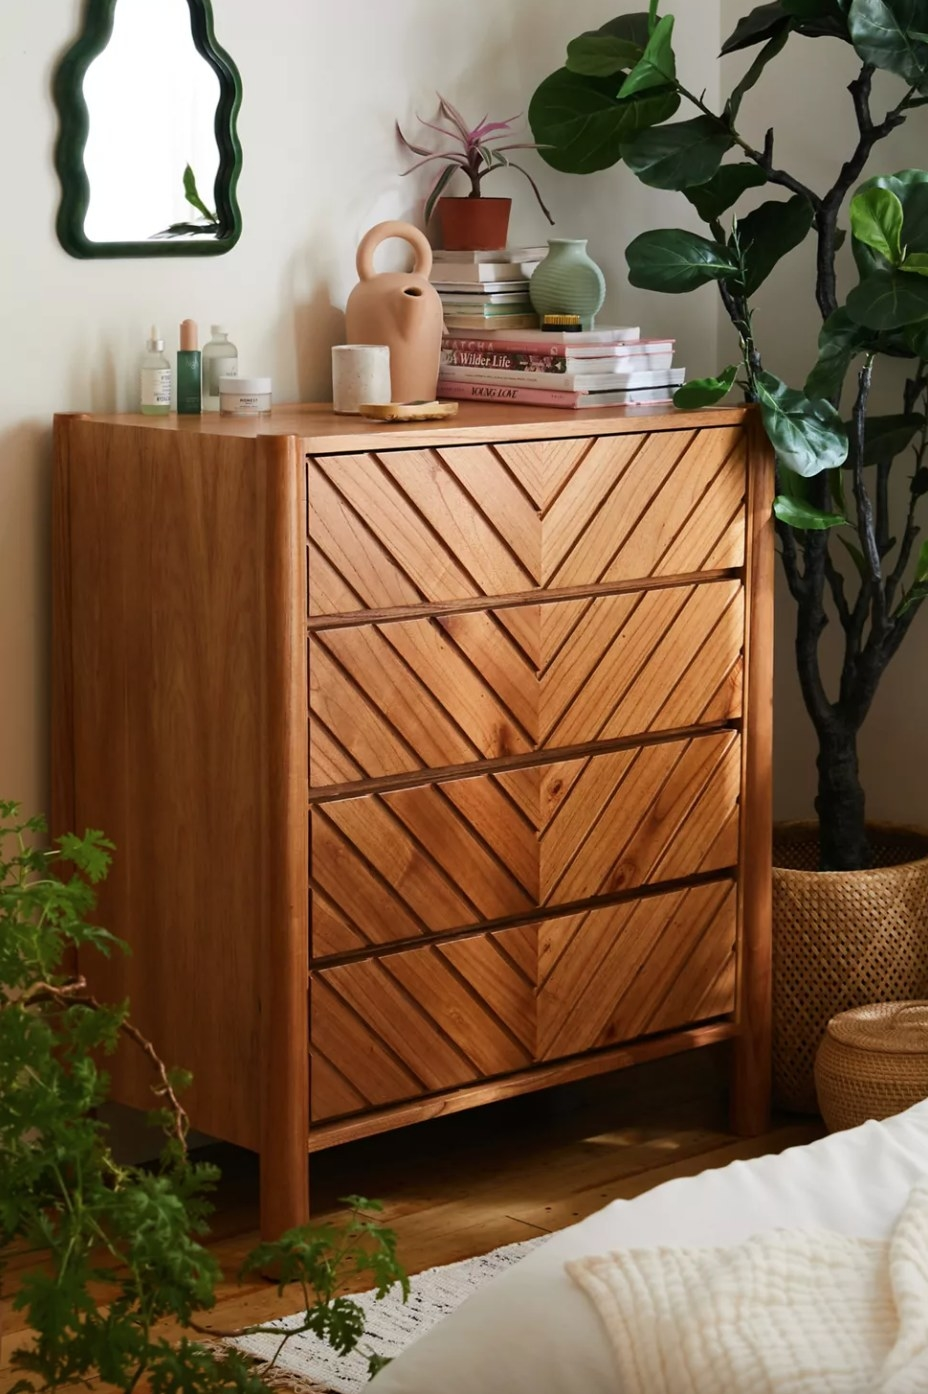 the four drawer light wood dresser with chevron patterns carved into the wood